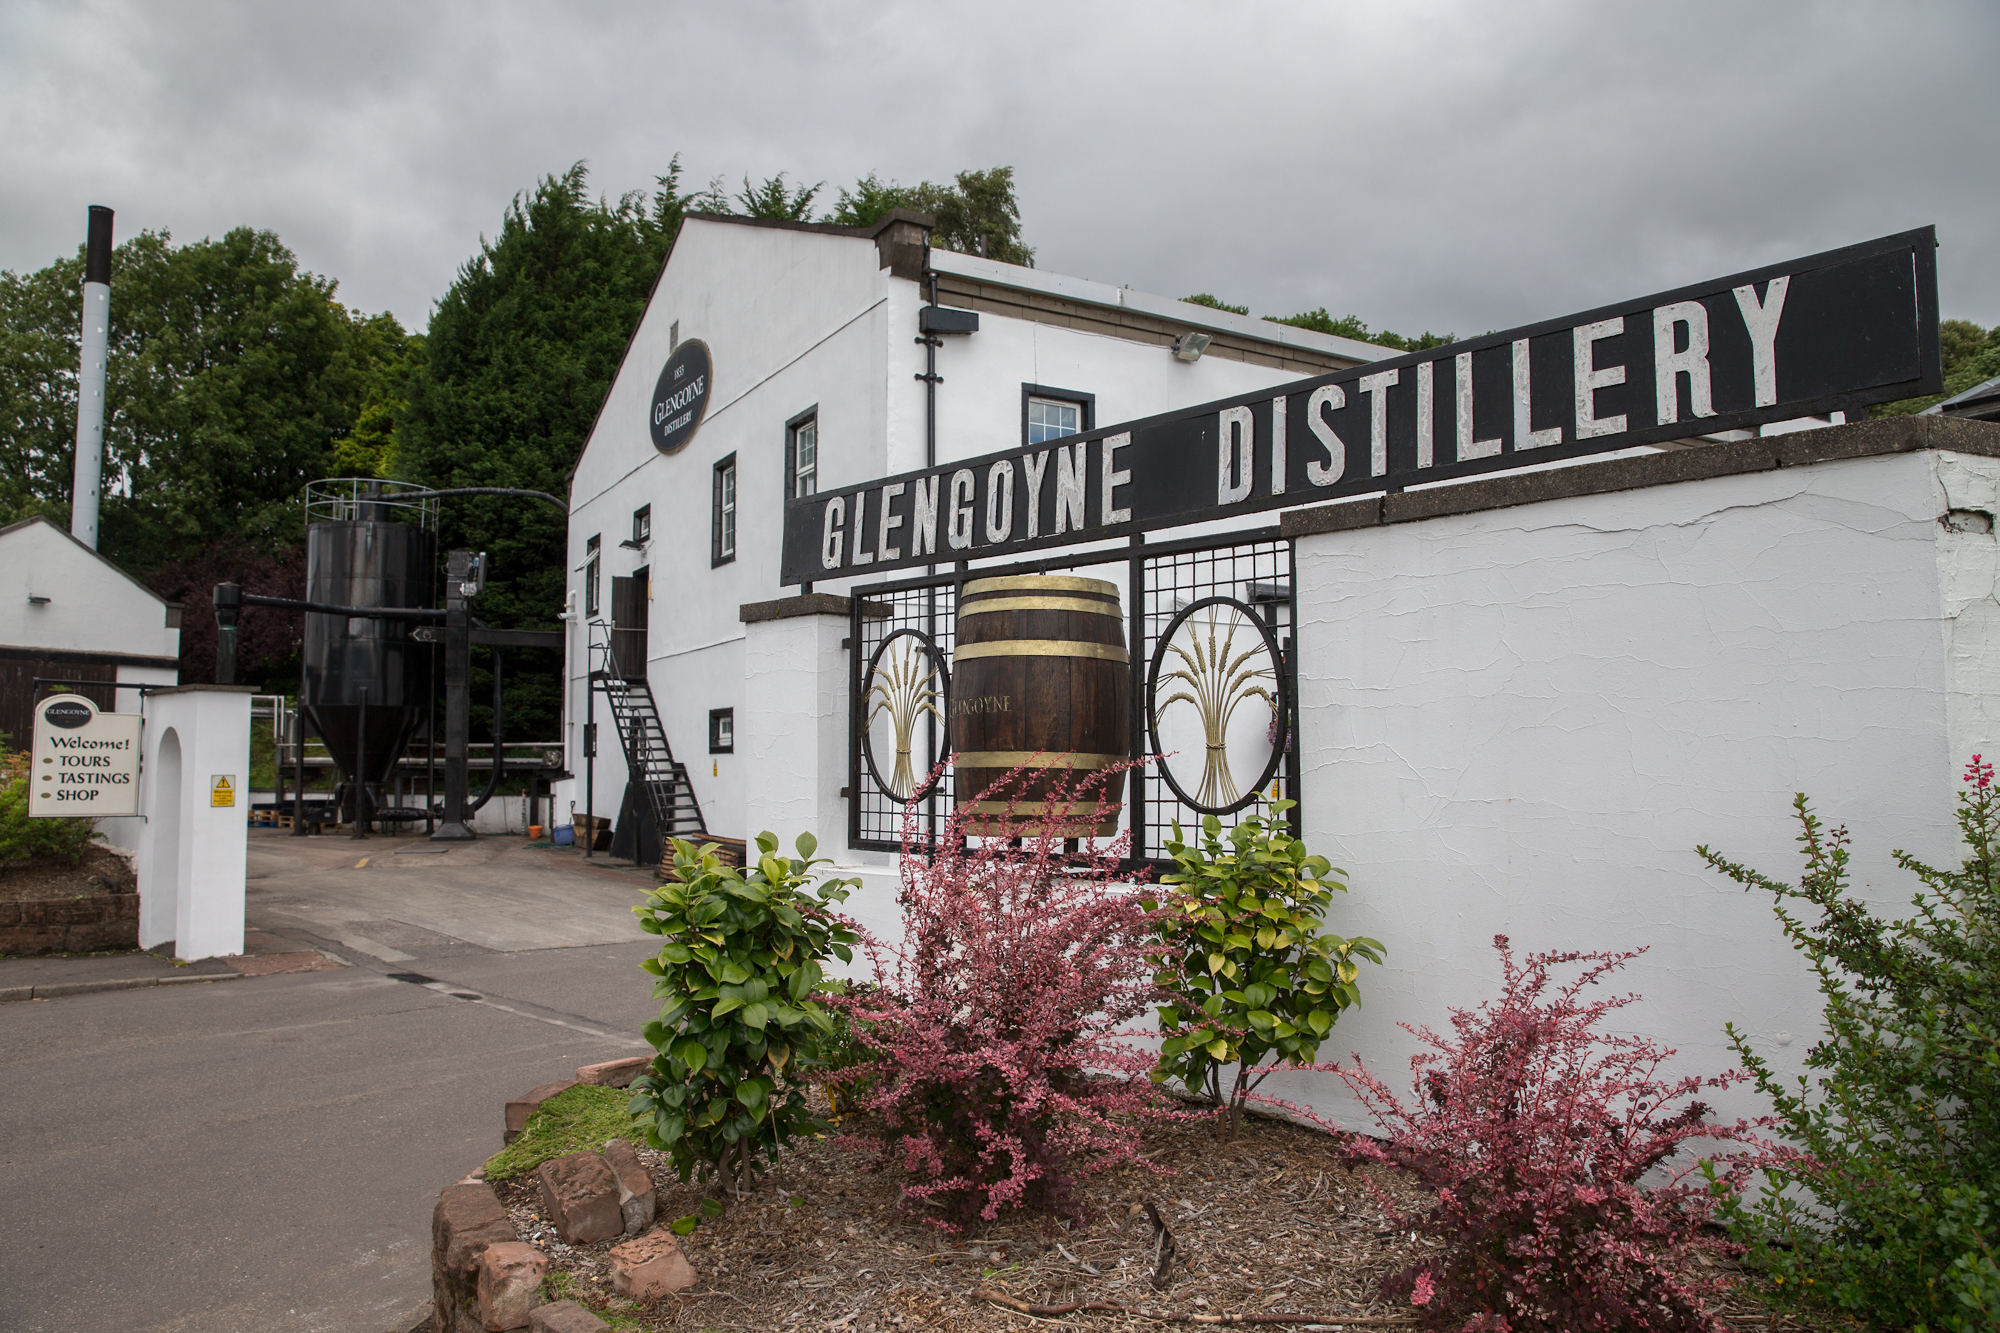 Glengoyne Distillery - only a 35 minute drive from Glasgow City Centre